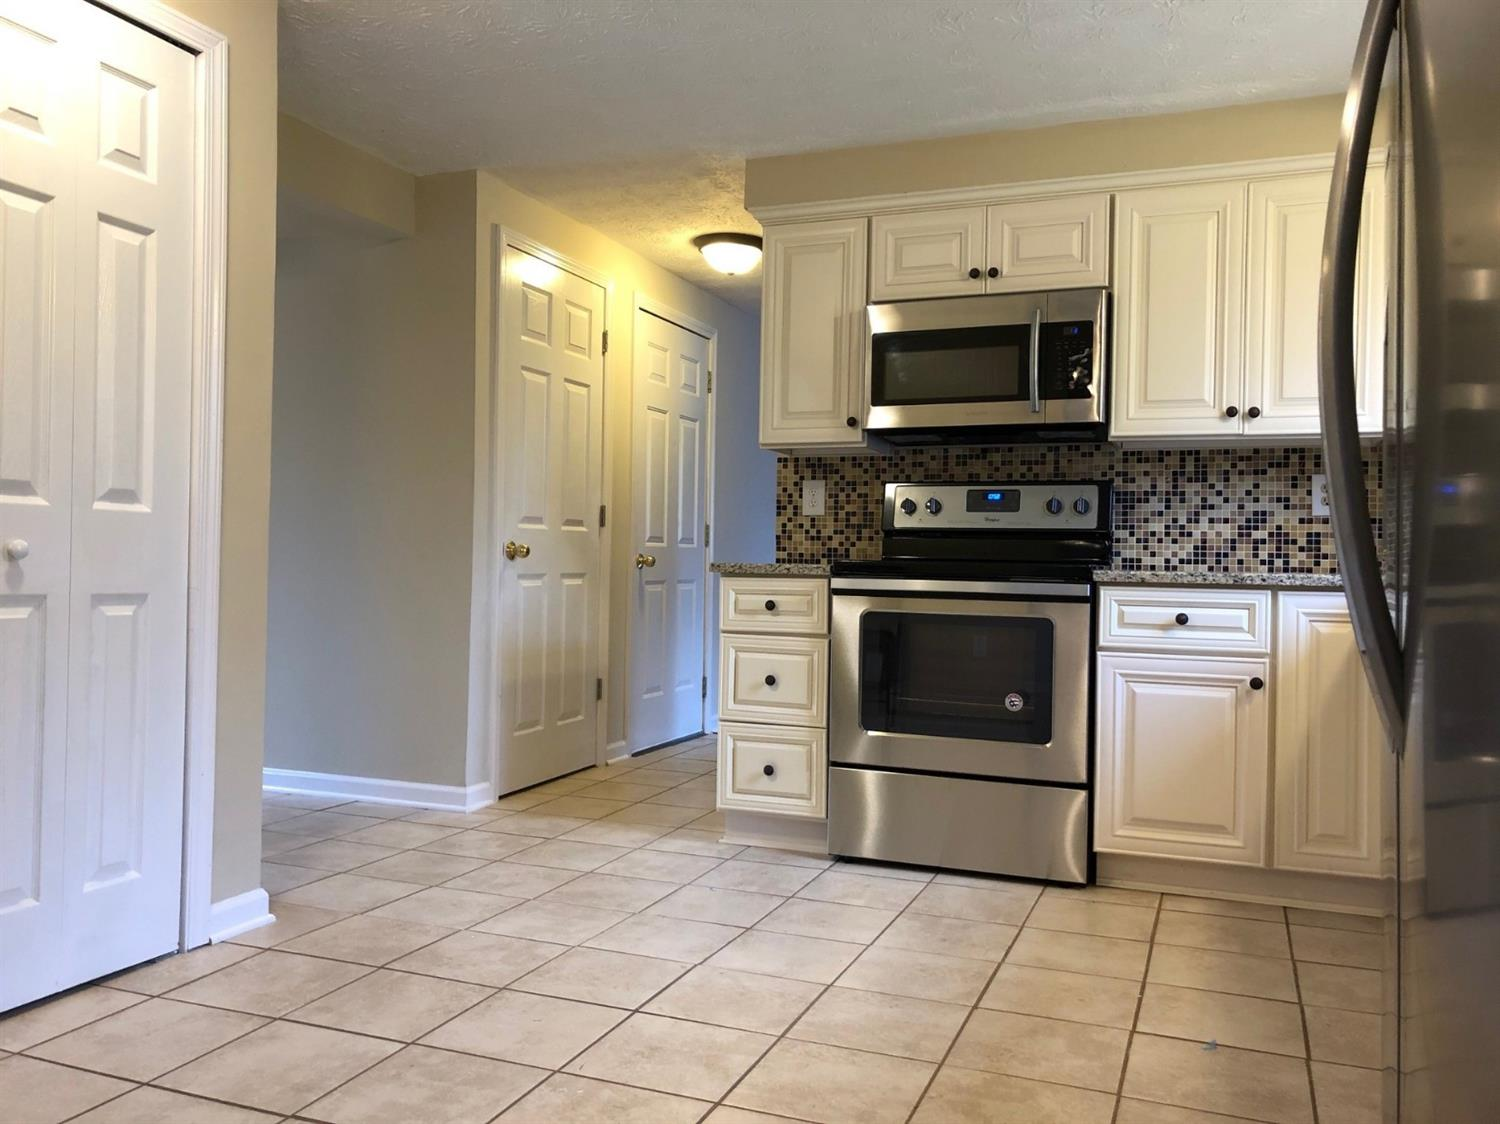 Property for sale at 692 Harcourt Drive, Springdale,  OH 45246